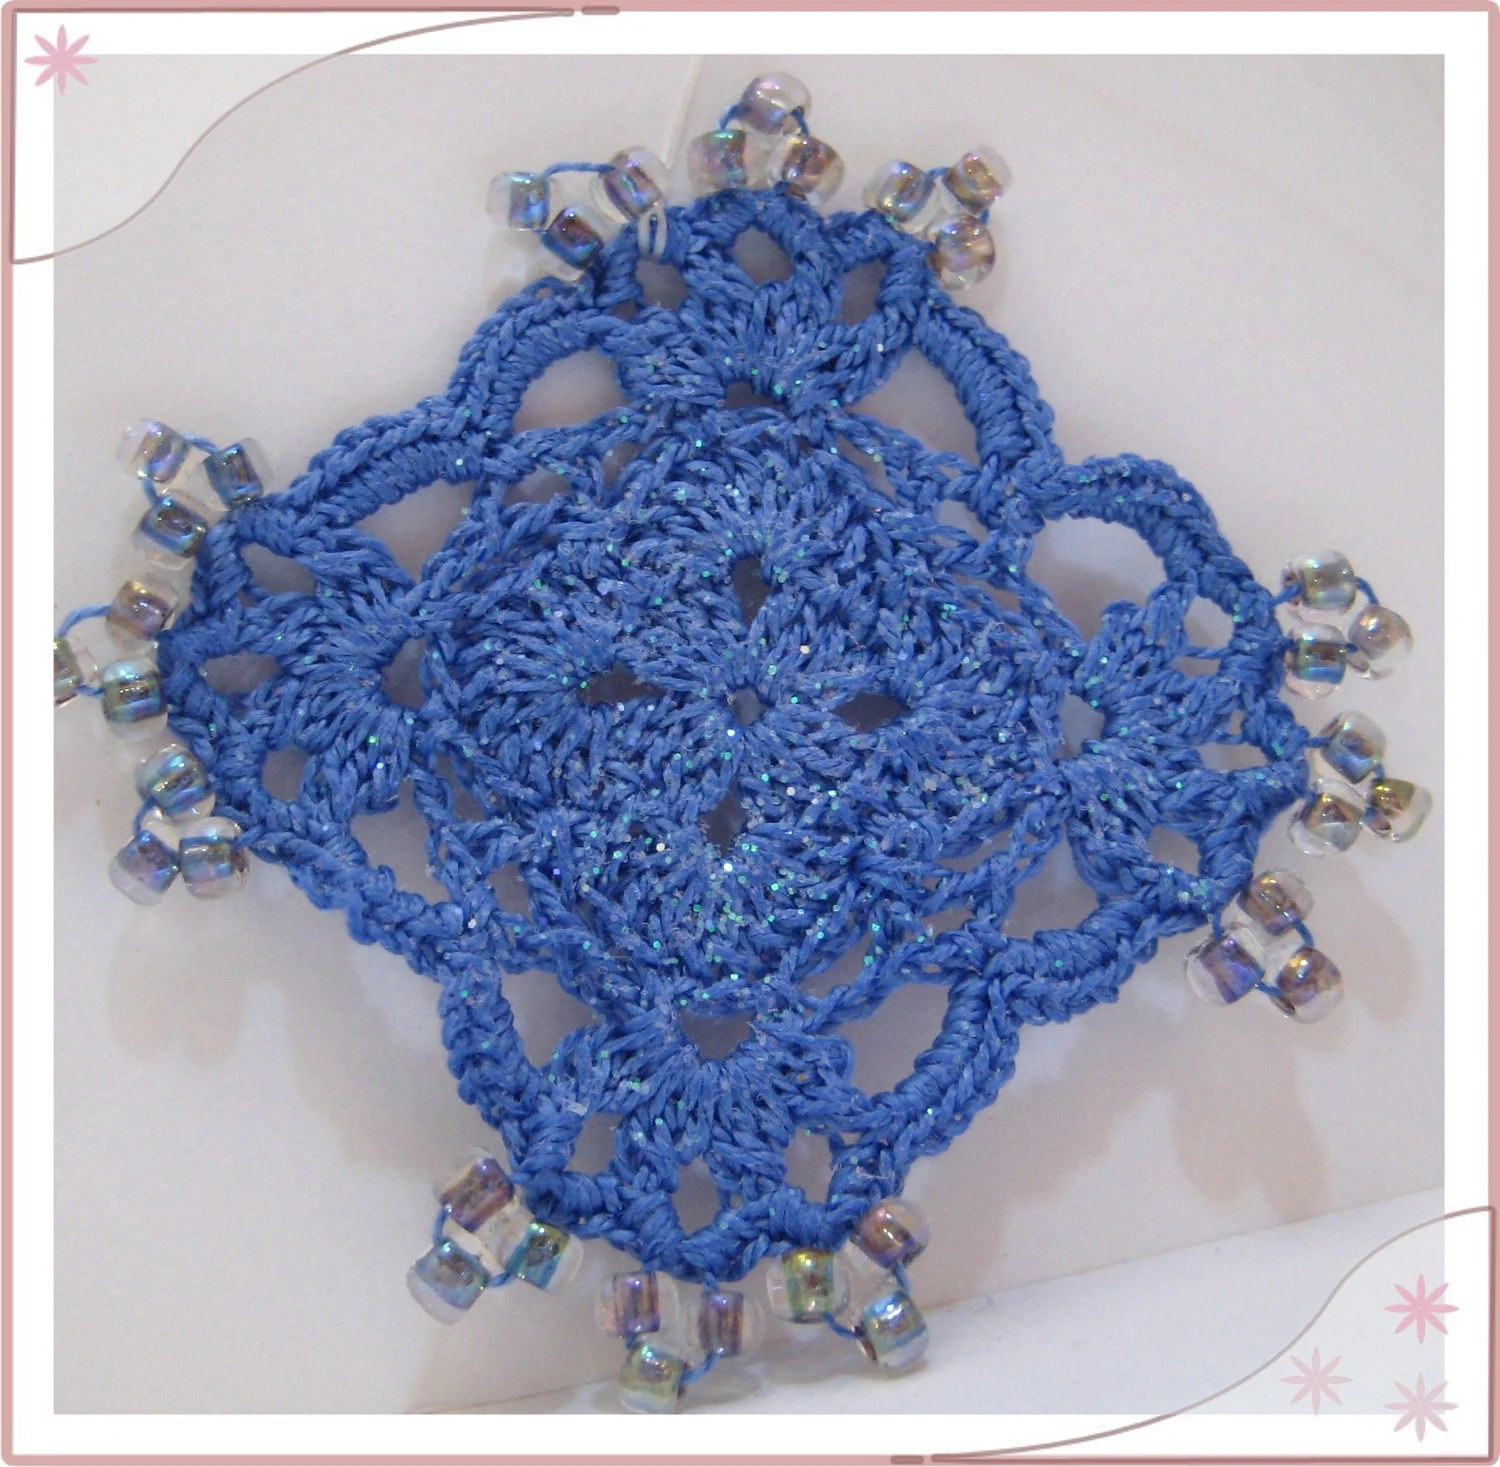 Royal Blue Crochet Lace Hanging Beaded Ornament